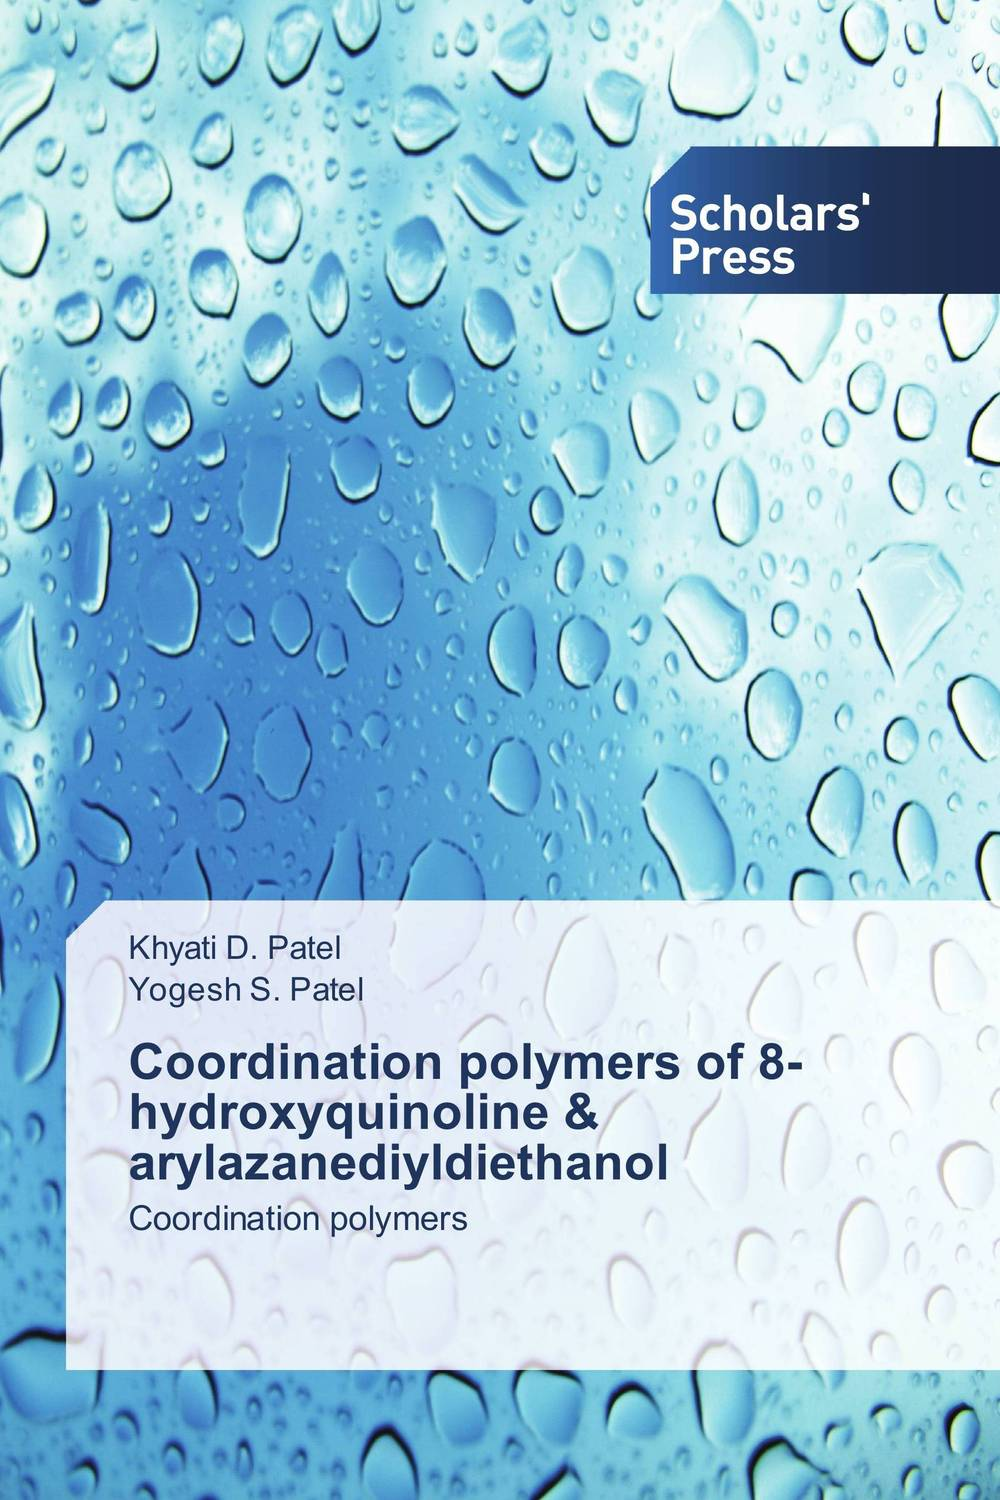 Coordination polymers of 8-hydroxyquinoline & arylazanediyldiethanol csp as a coordination language